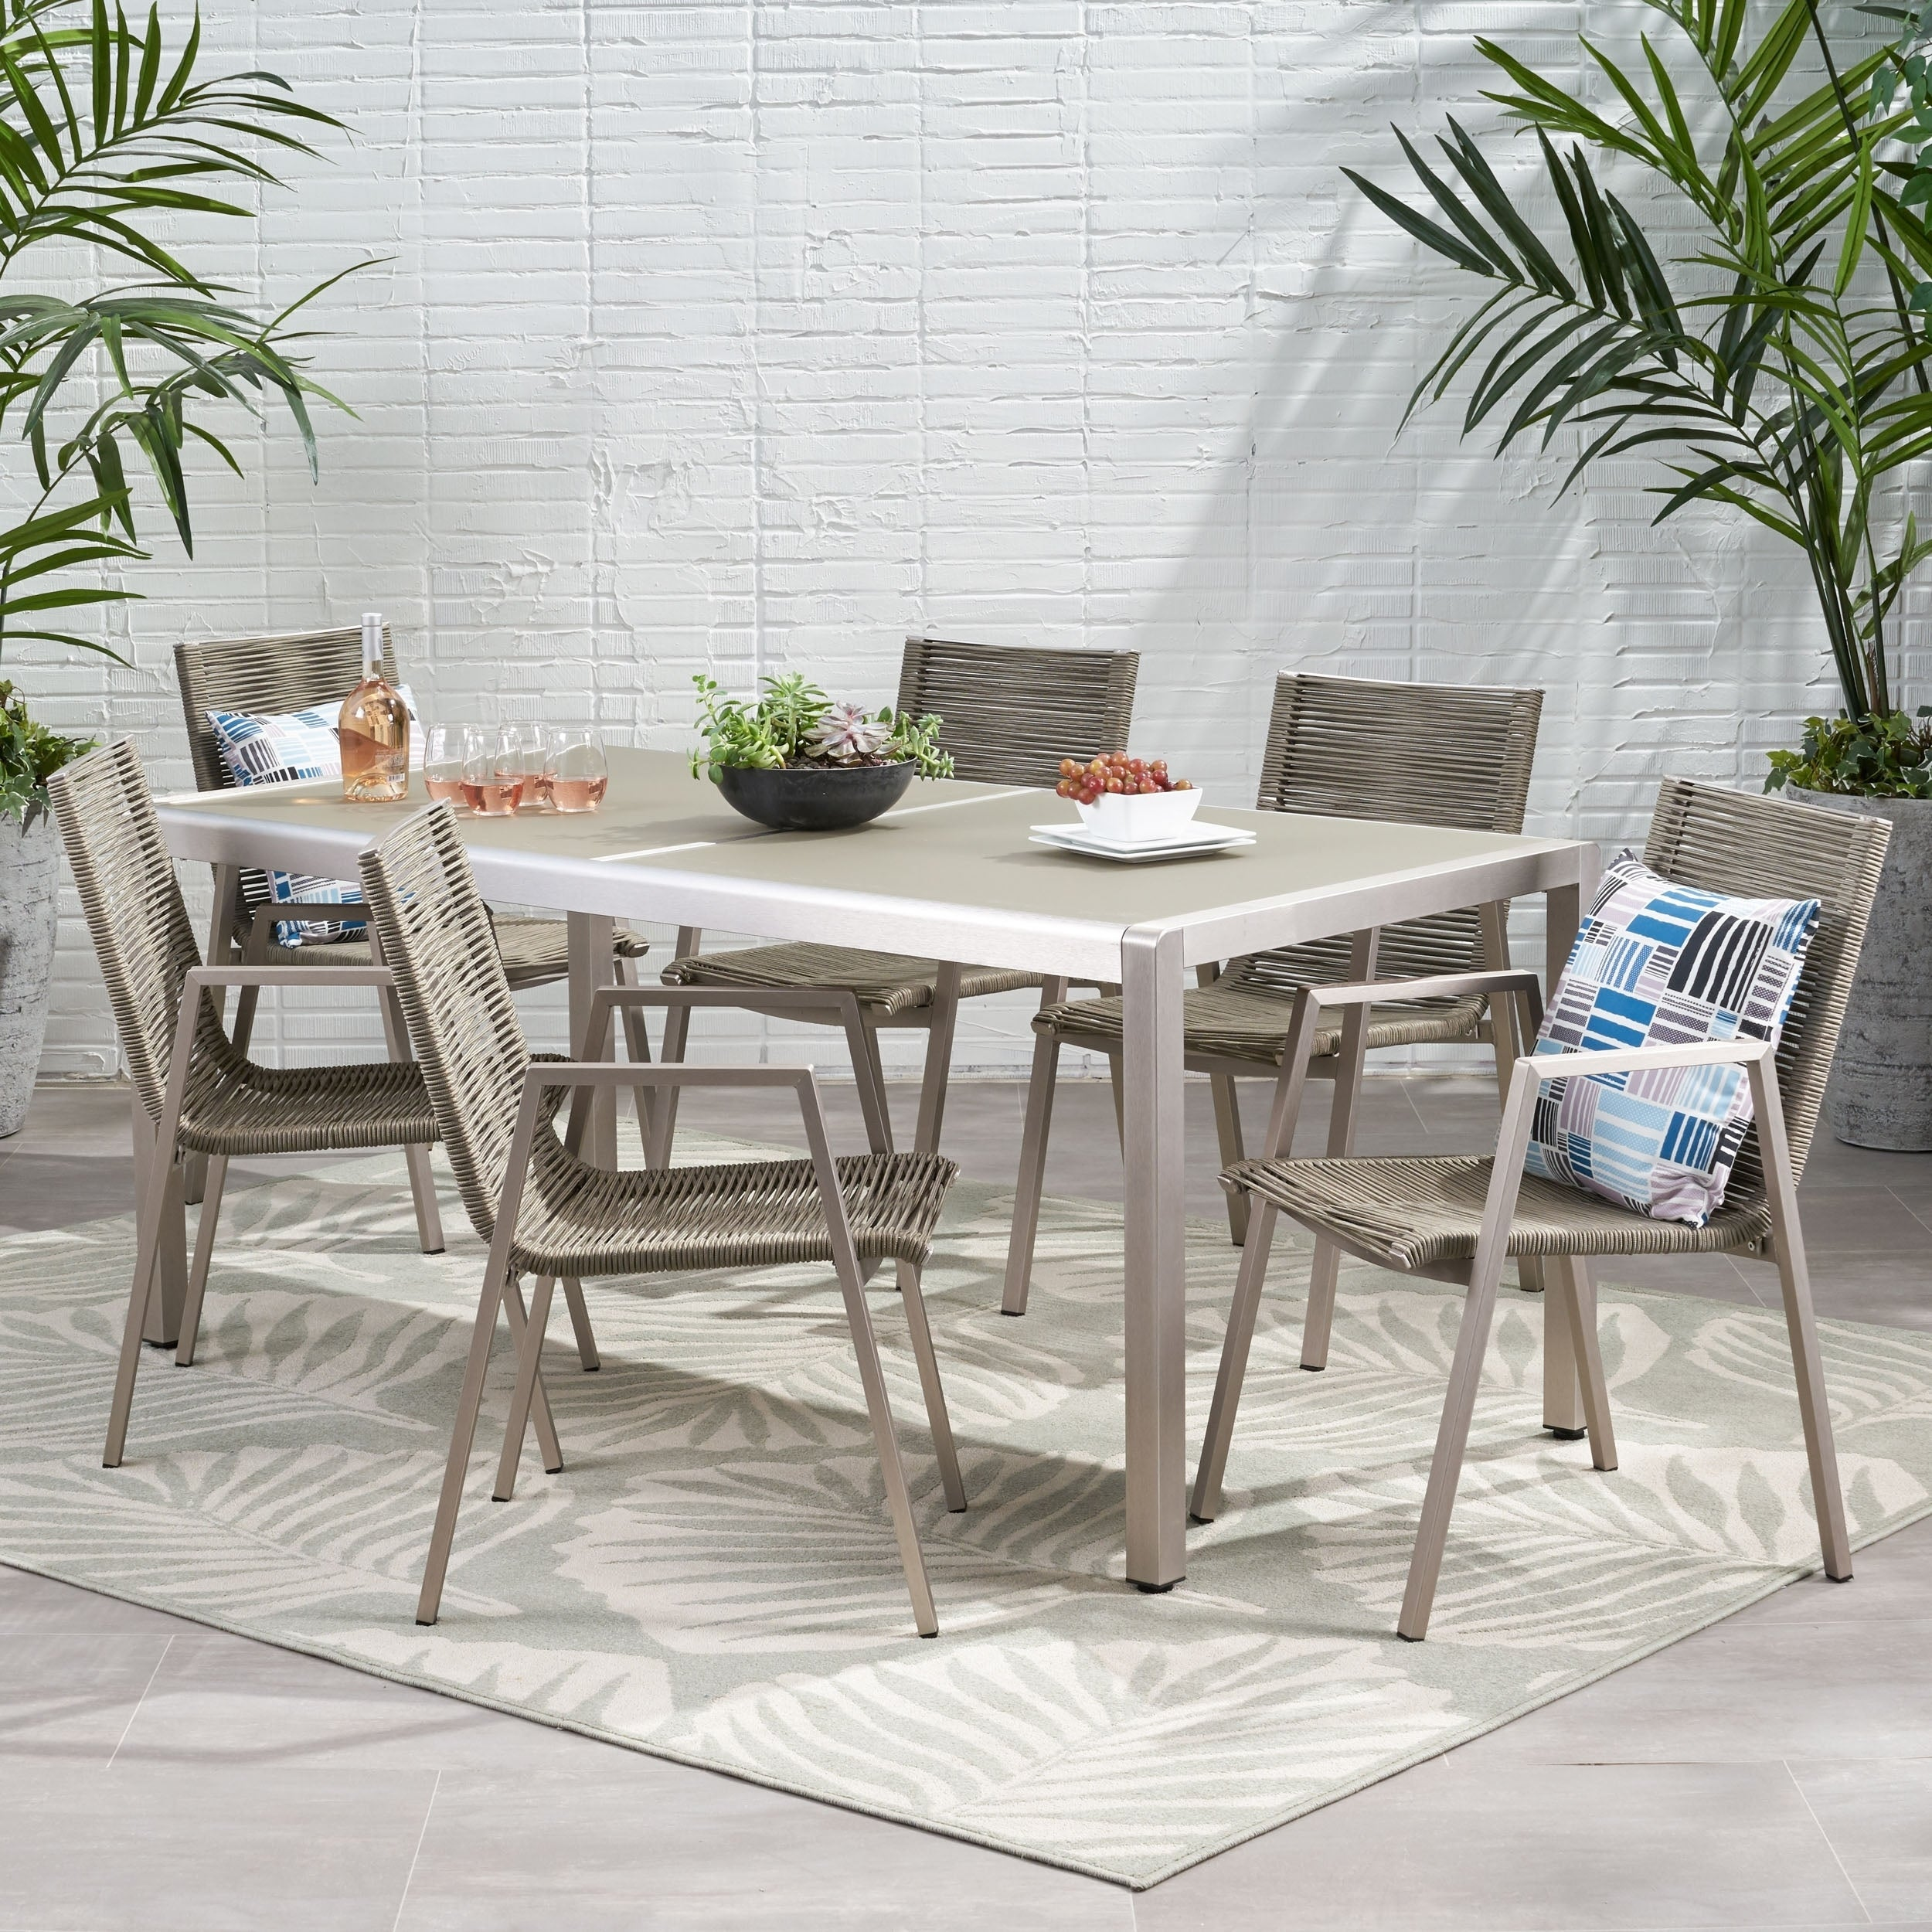 Grafton Outdoor Modern 6 Seater Aluminum Dining Set With Tempered Glass Top By Christopher Knight Home Overstock 29156474